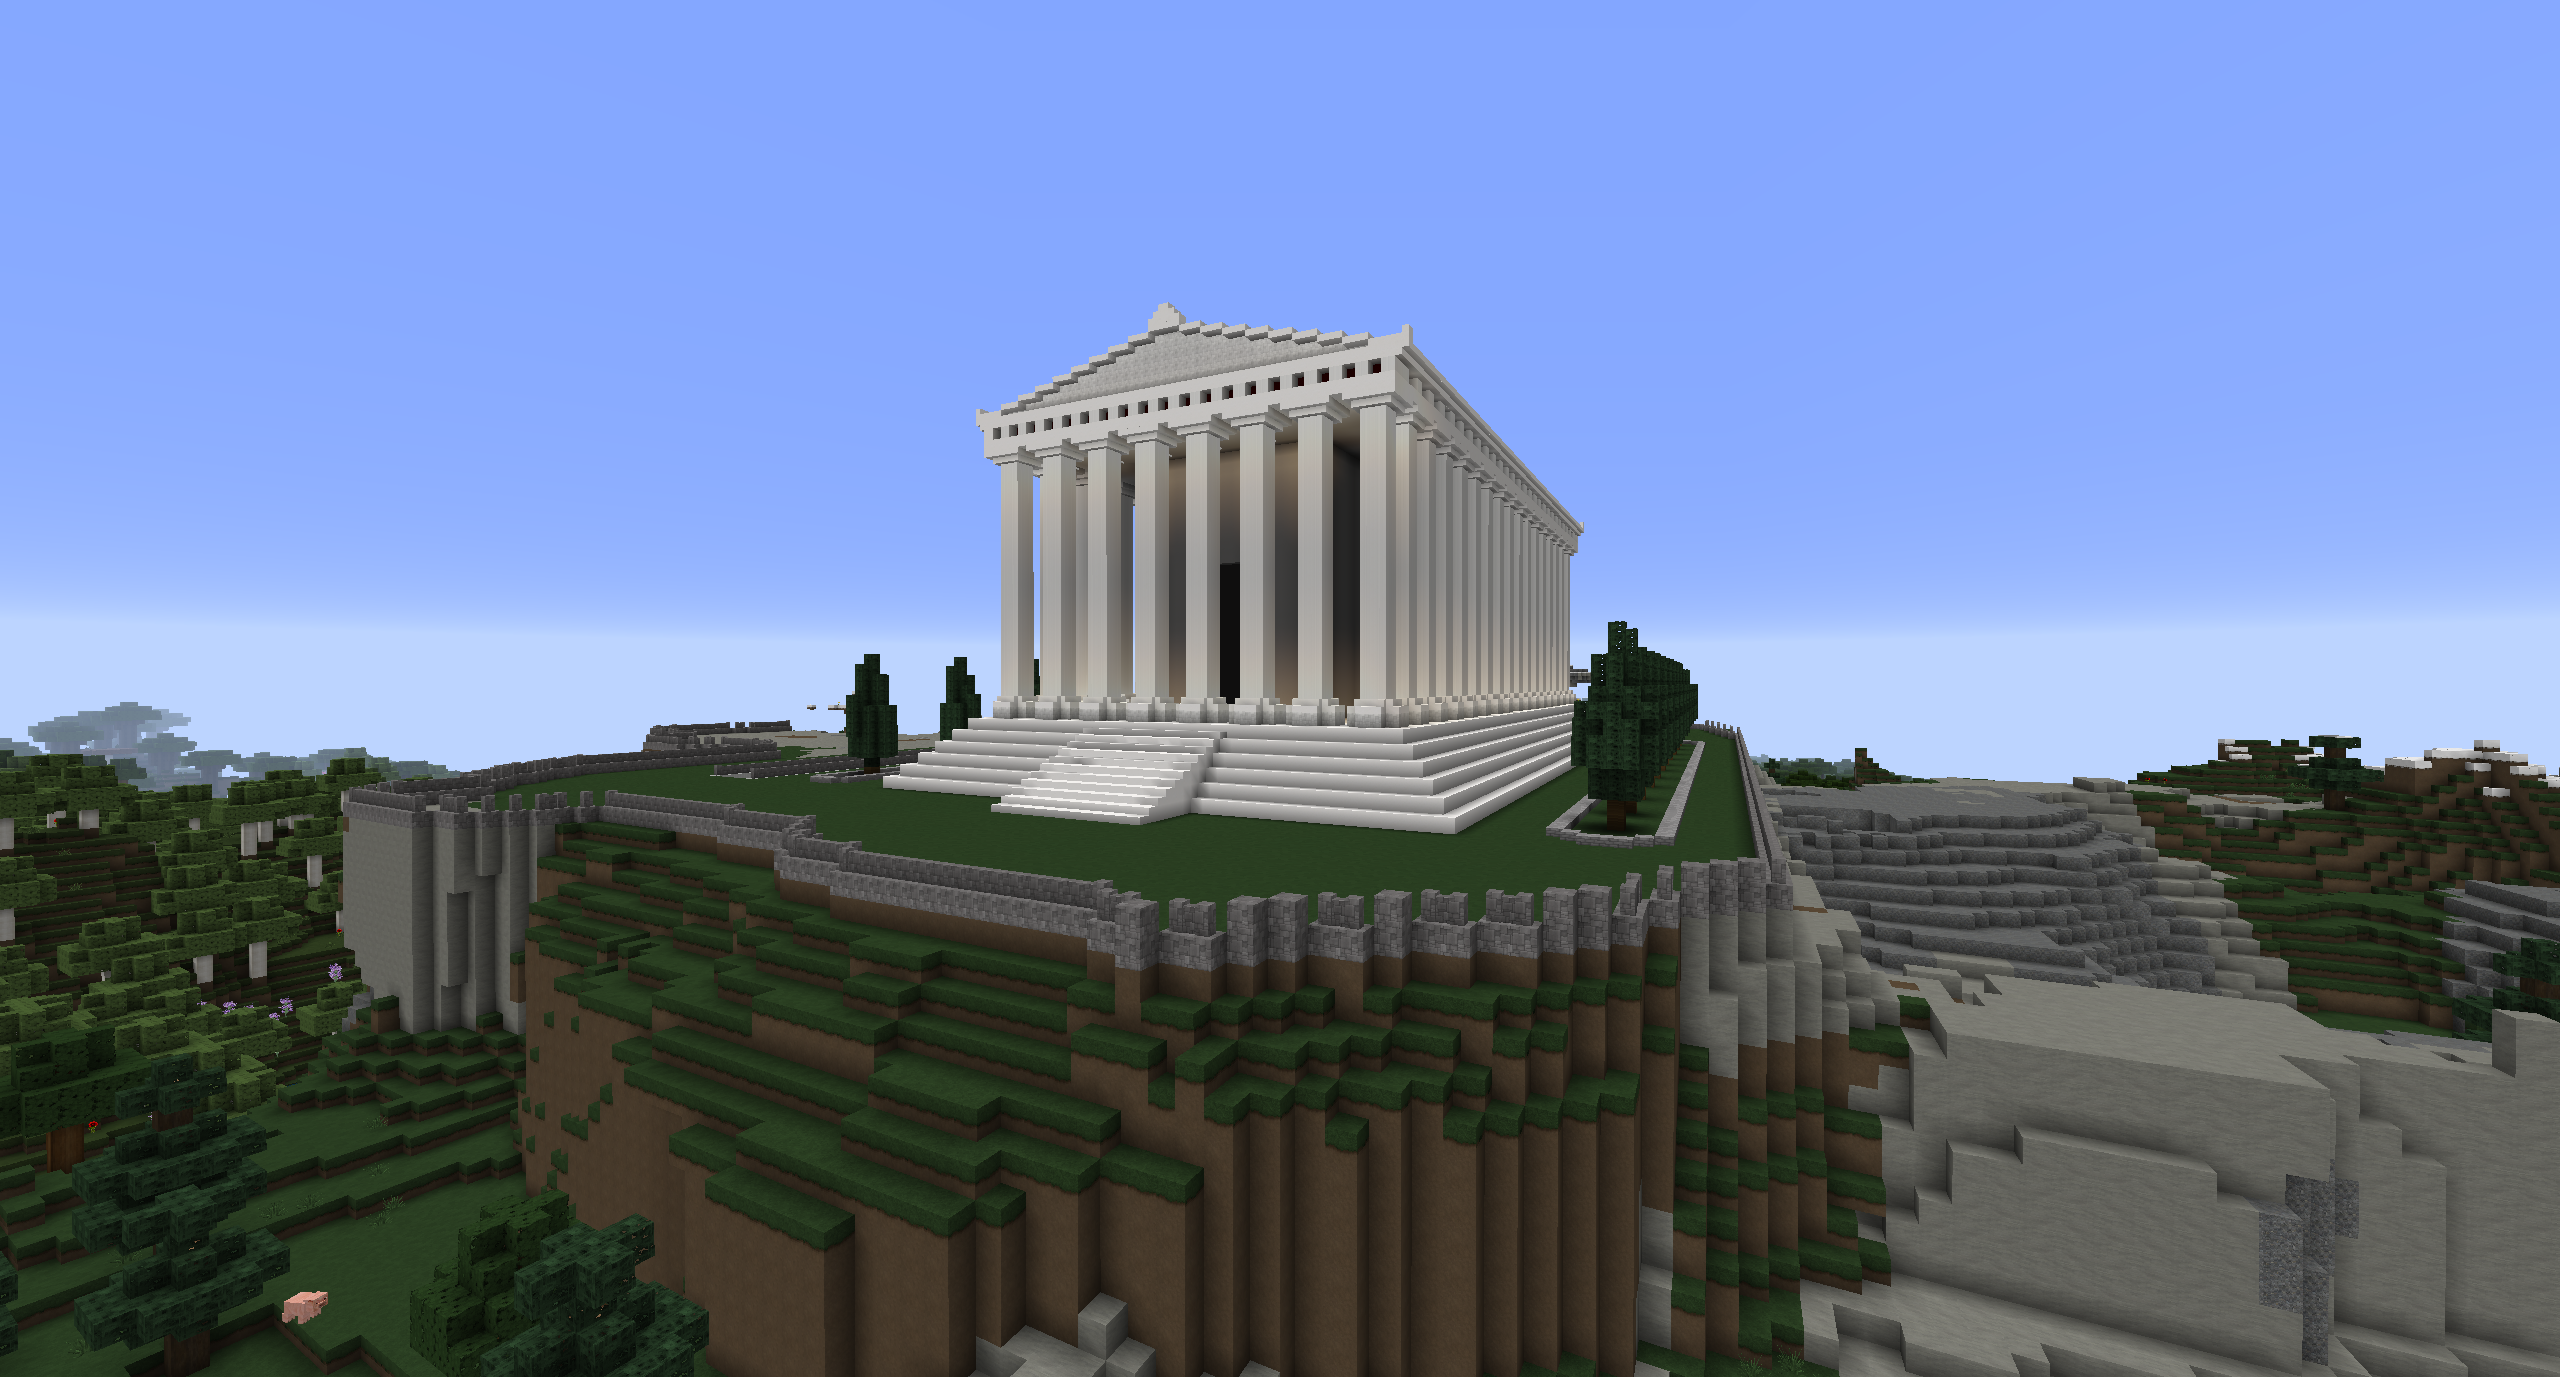 how to build the parthenon for a school project